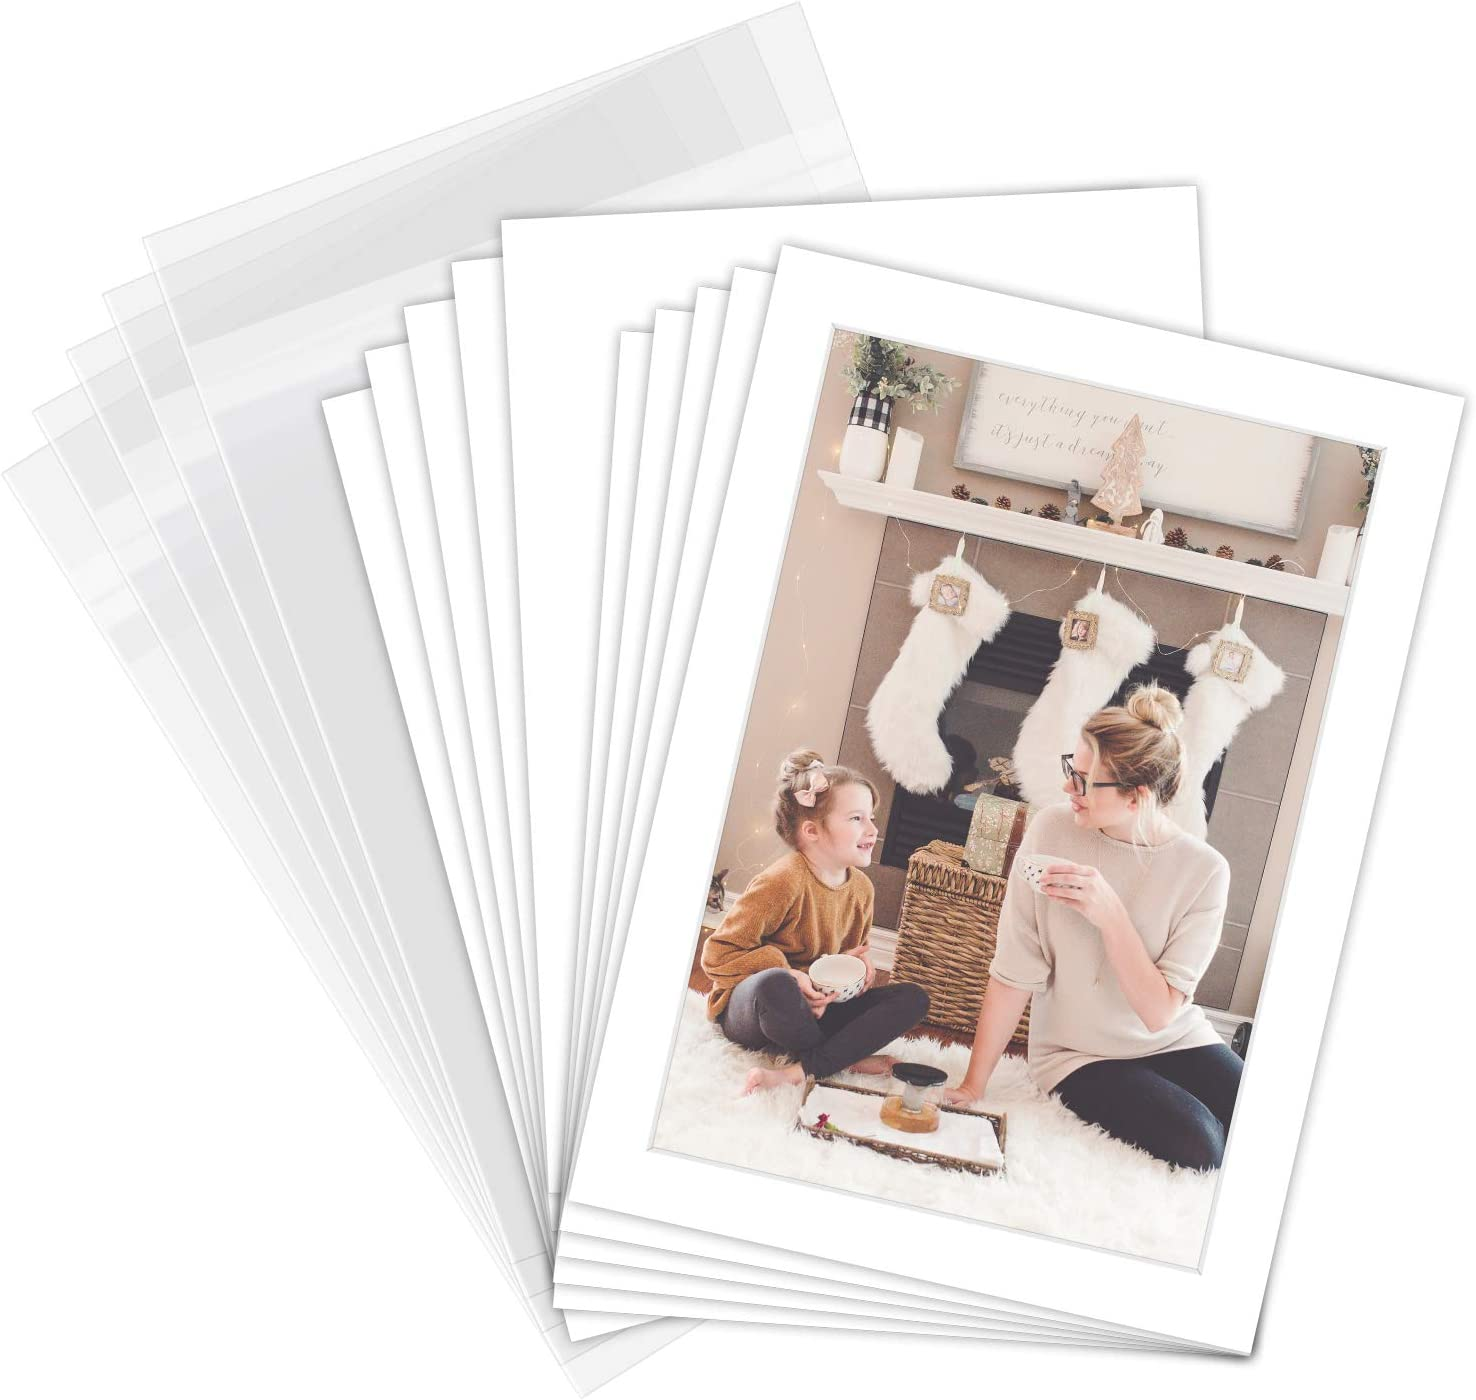 White Backing Board Uncut Photo Mat 5 x 7 Inches, 100 Pack